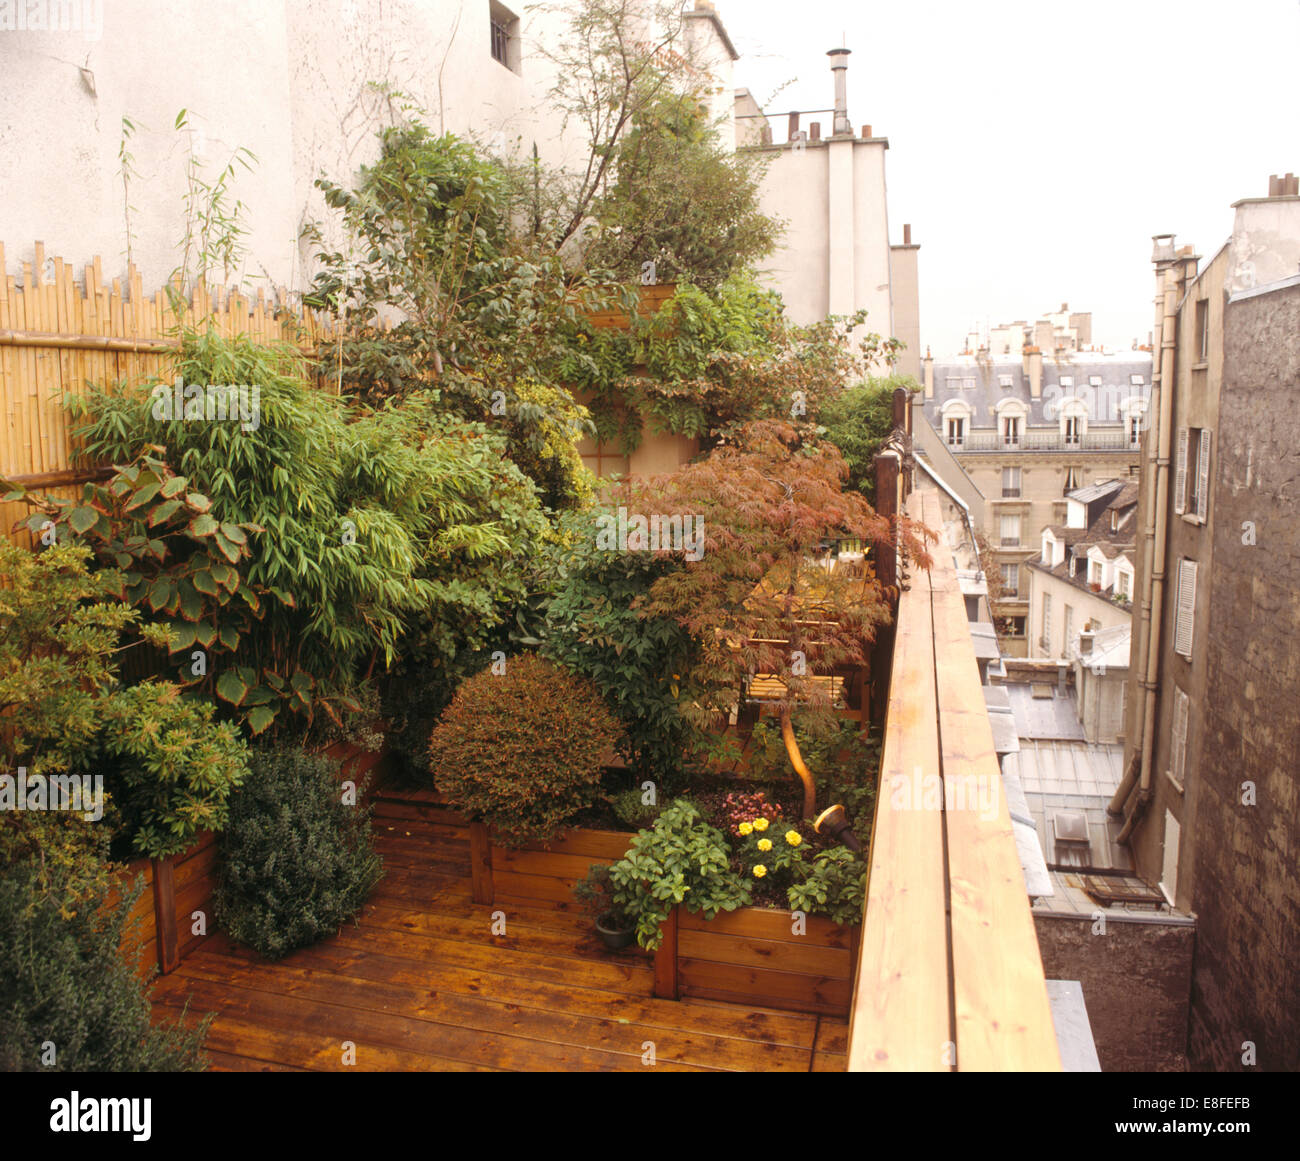 Lush Green Shrubs And Small Trees In Planters In Narrow Paris Roof